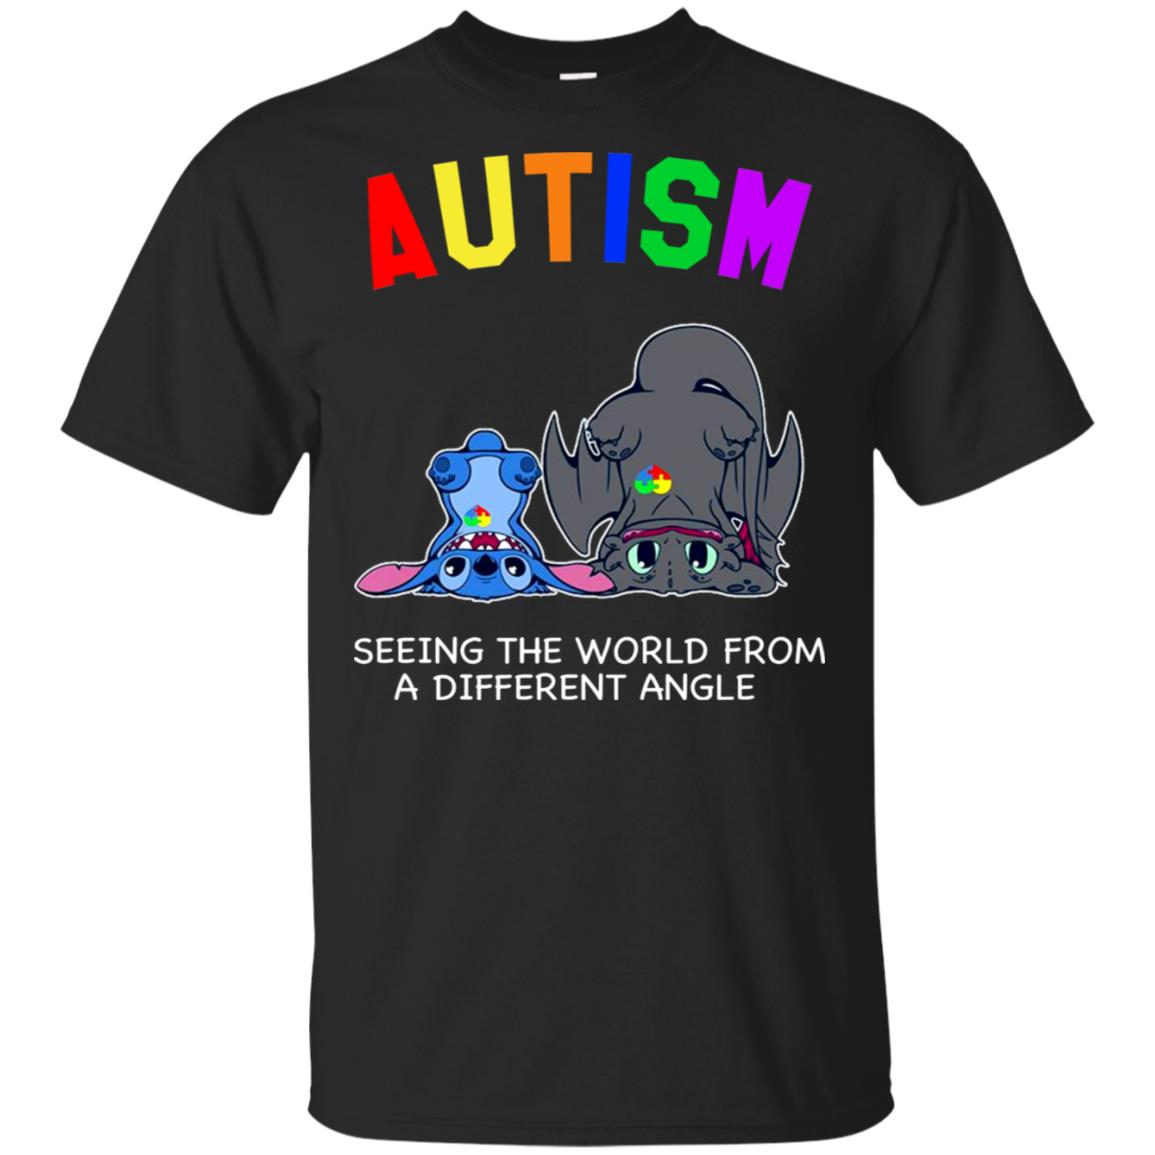 Stitch Toothless Autism seeing the world from a different angle